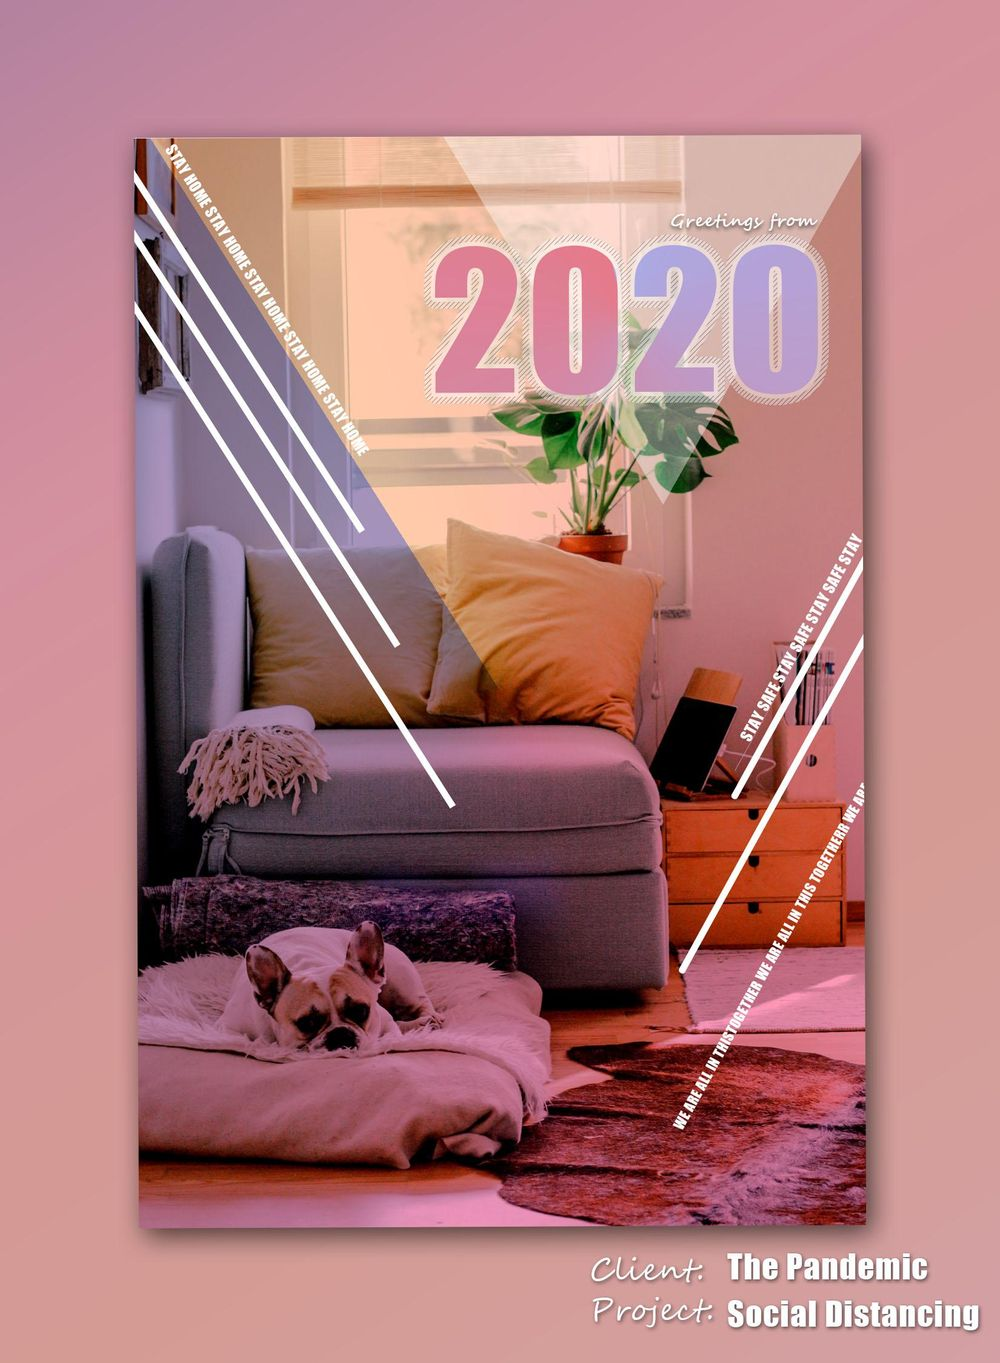 2020 Postcard - image 1 - student project